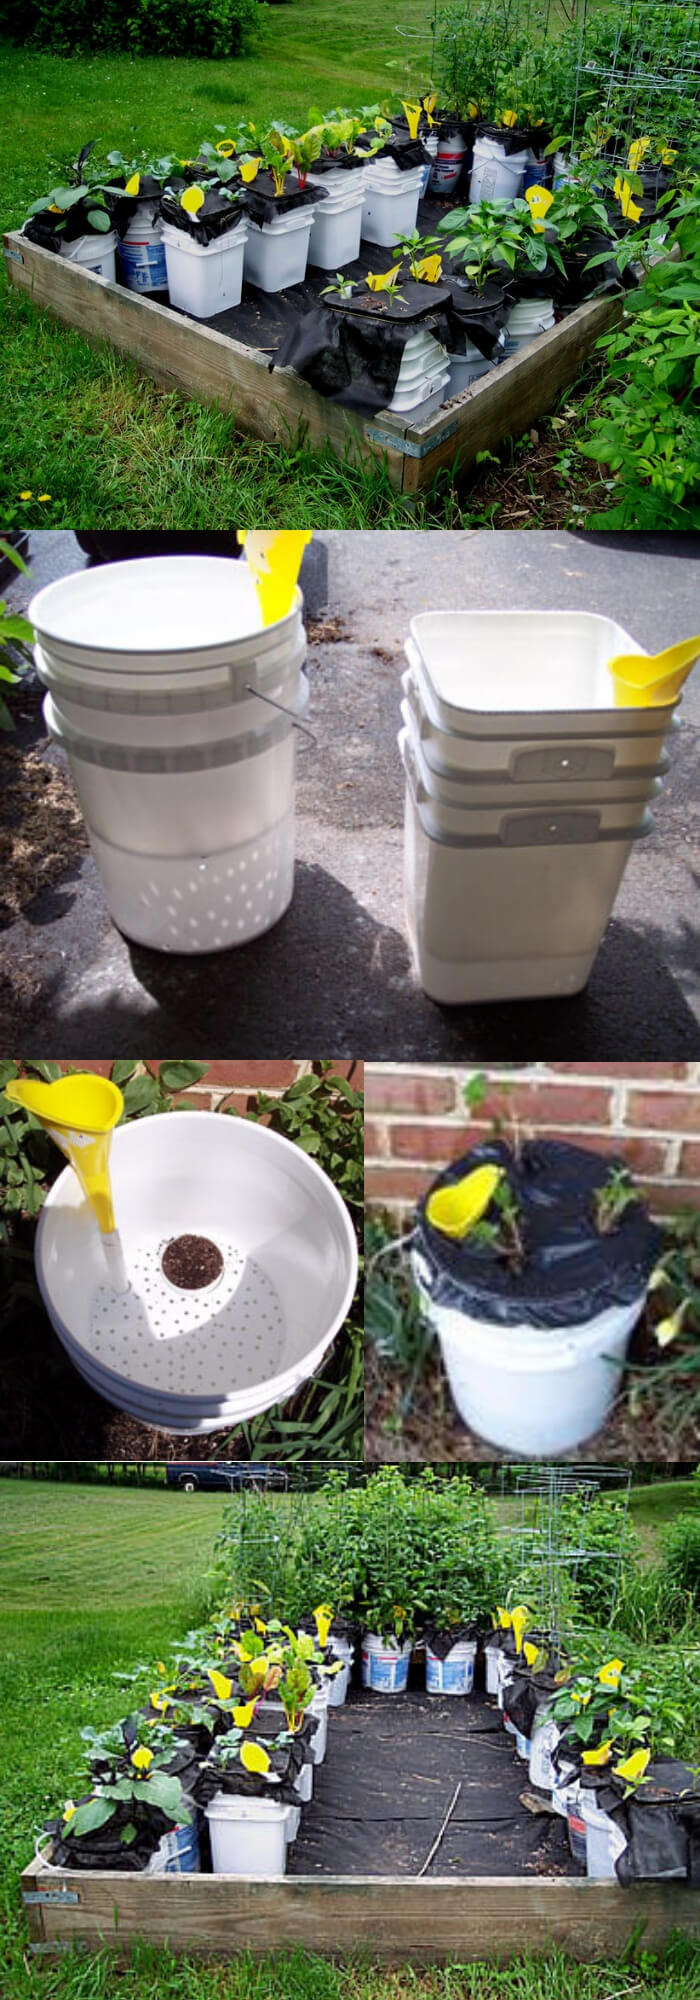 Self watering containers | Best DIY Self-Watering System Ideas